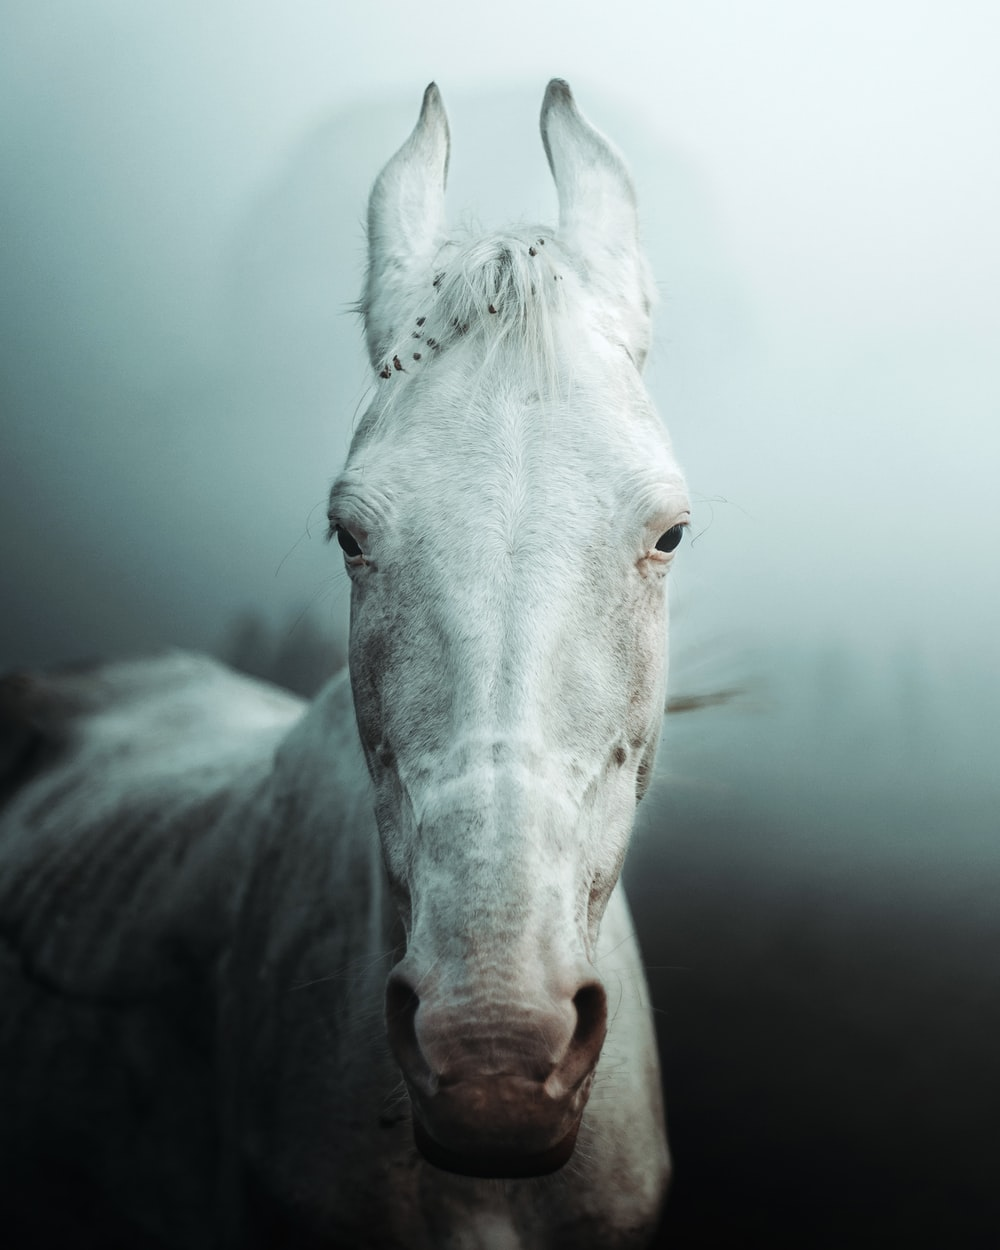 white horse head in close up photography